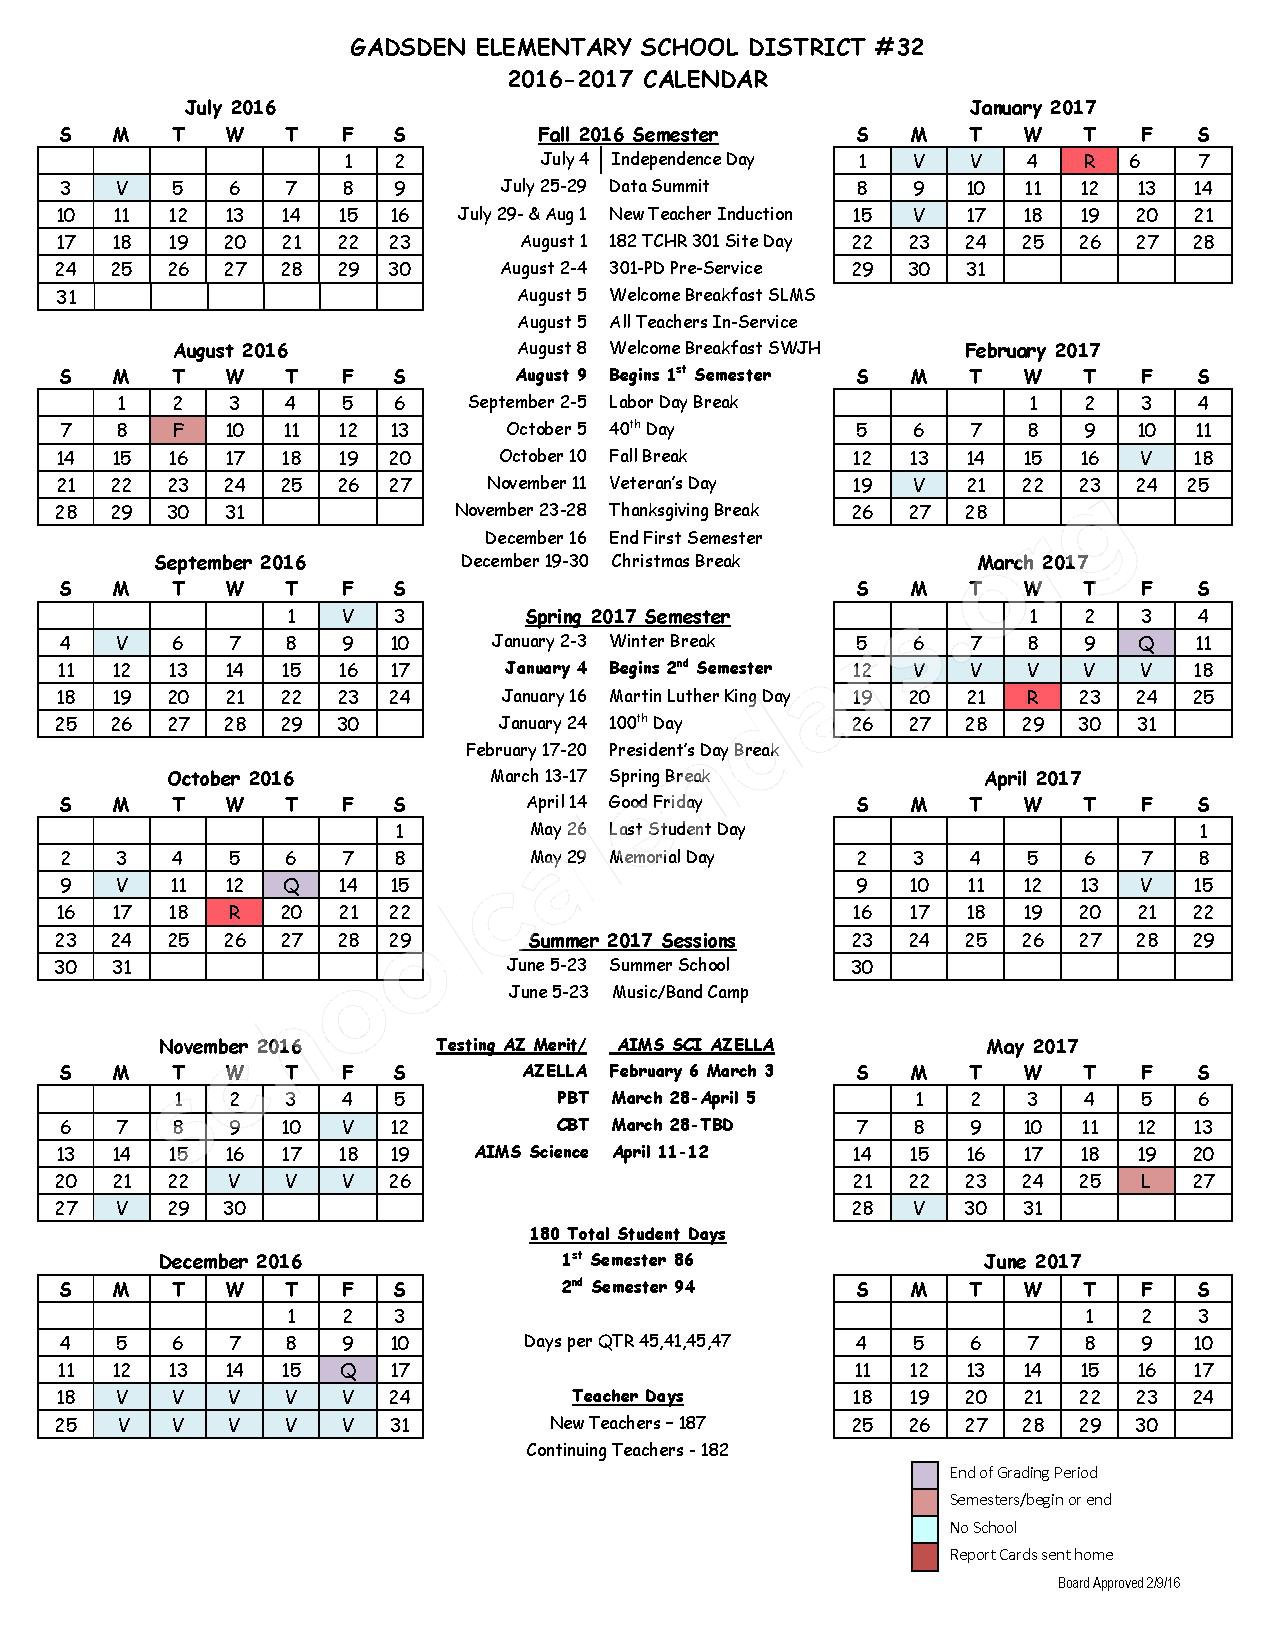 2016 - 2017 District Calendar – Gadsden Elementary School District #32 – page 1